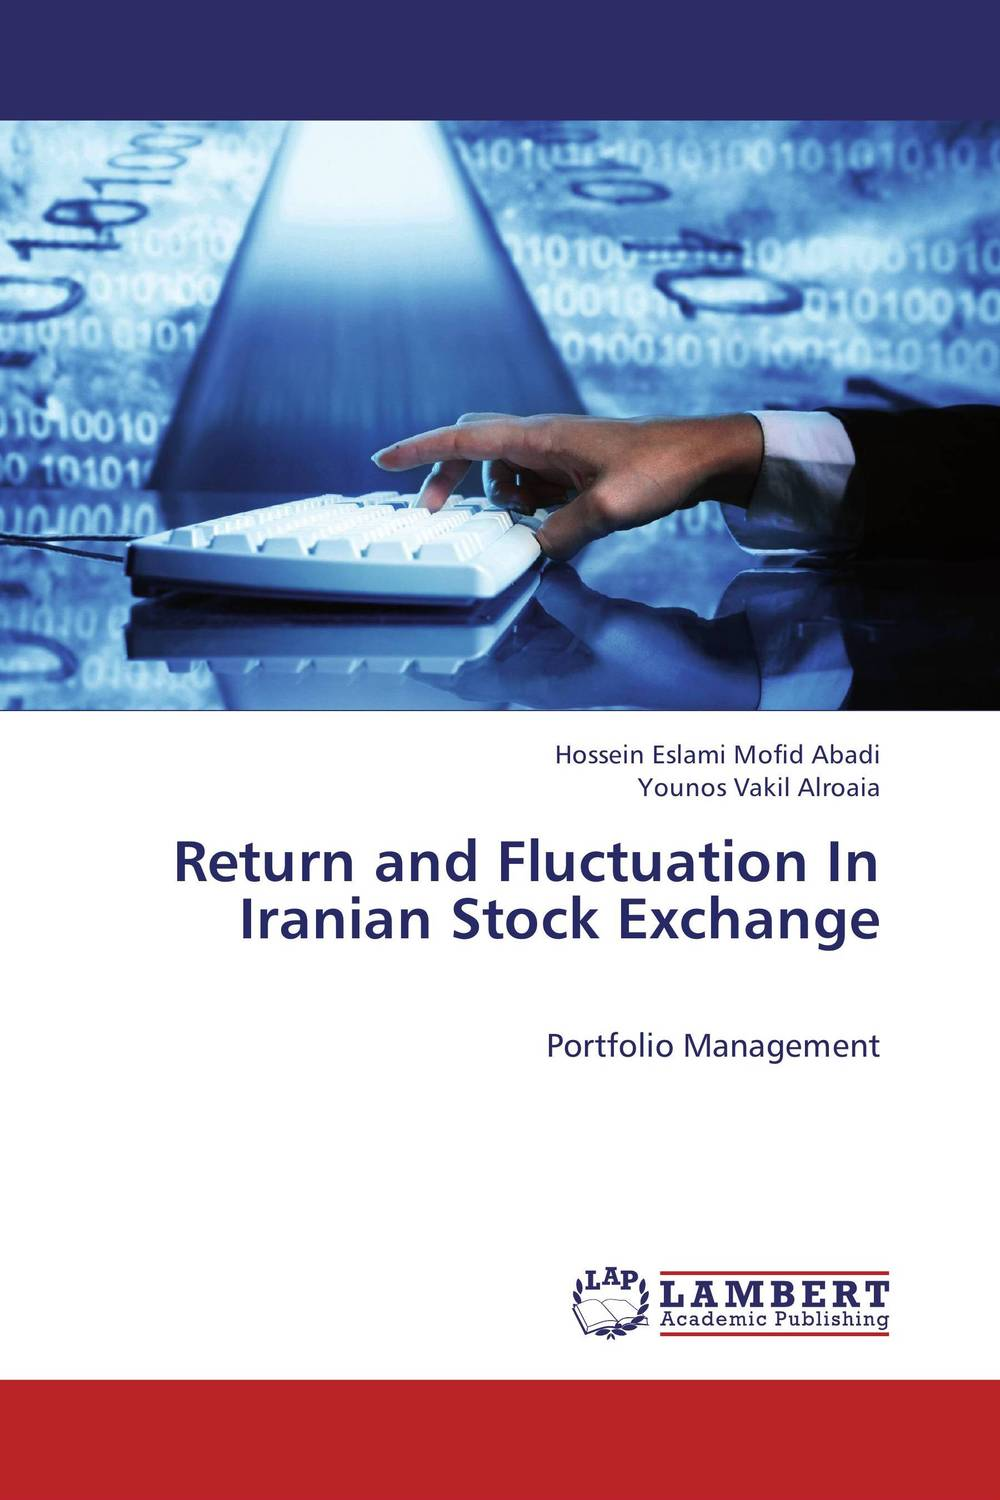 Return and Fluctuation In Iranian Stock Exchange christian szylar handbook of market risk